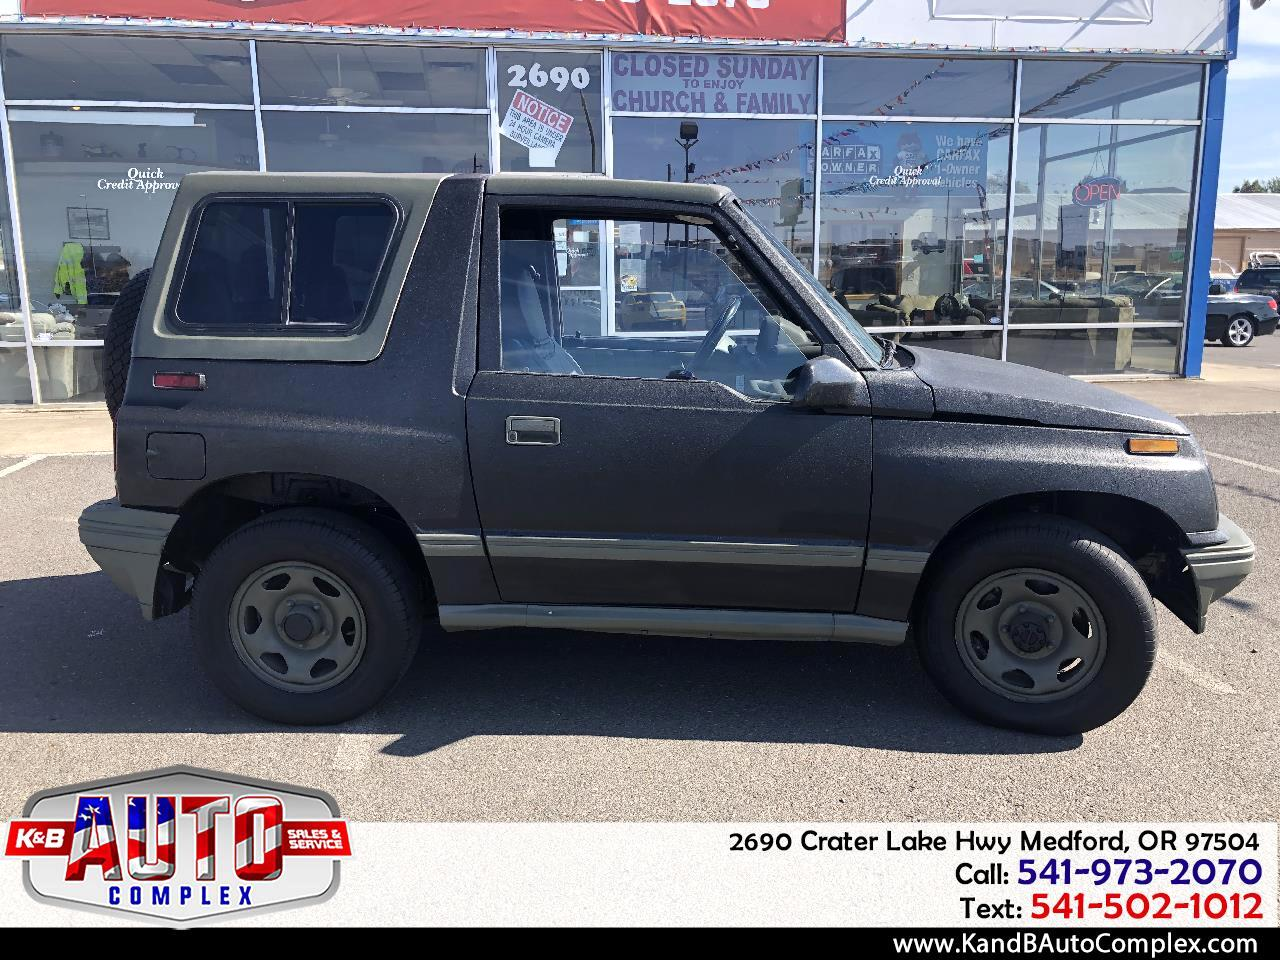 1991 Geo Tracker 2dr Convertible